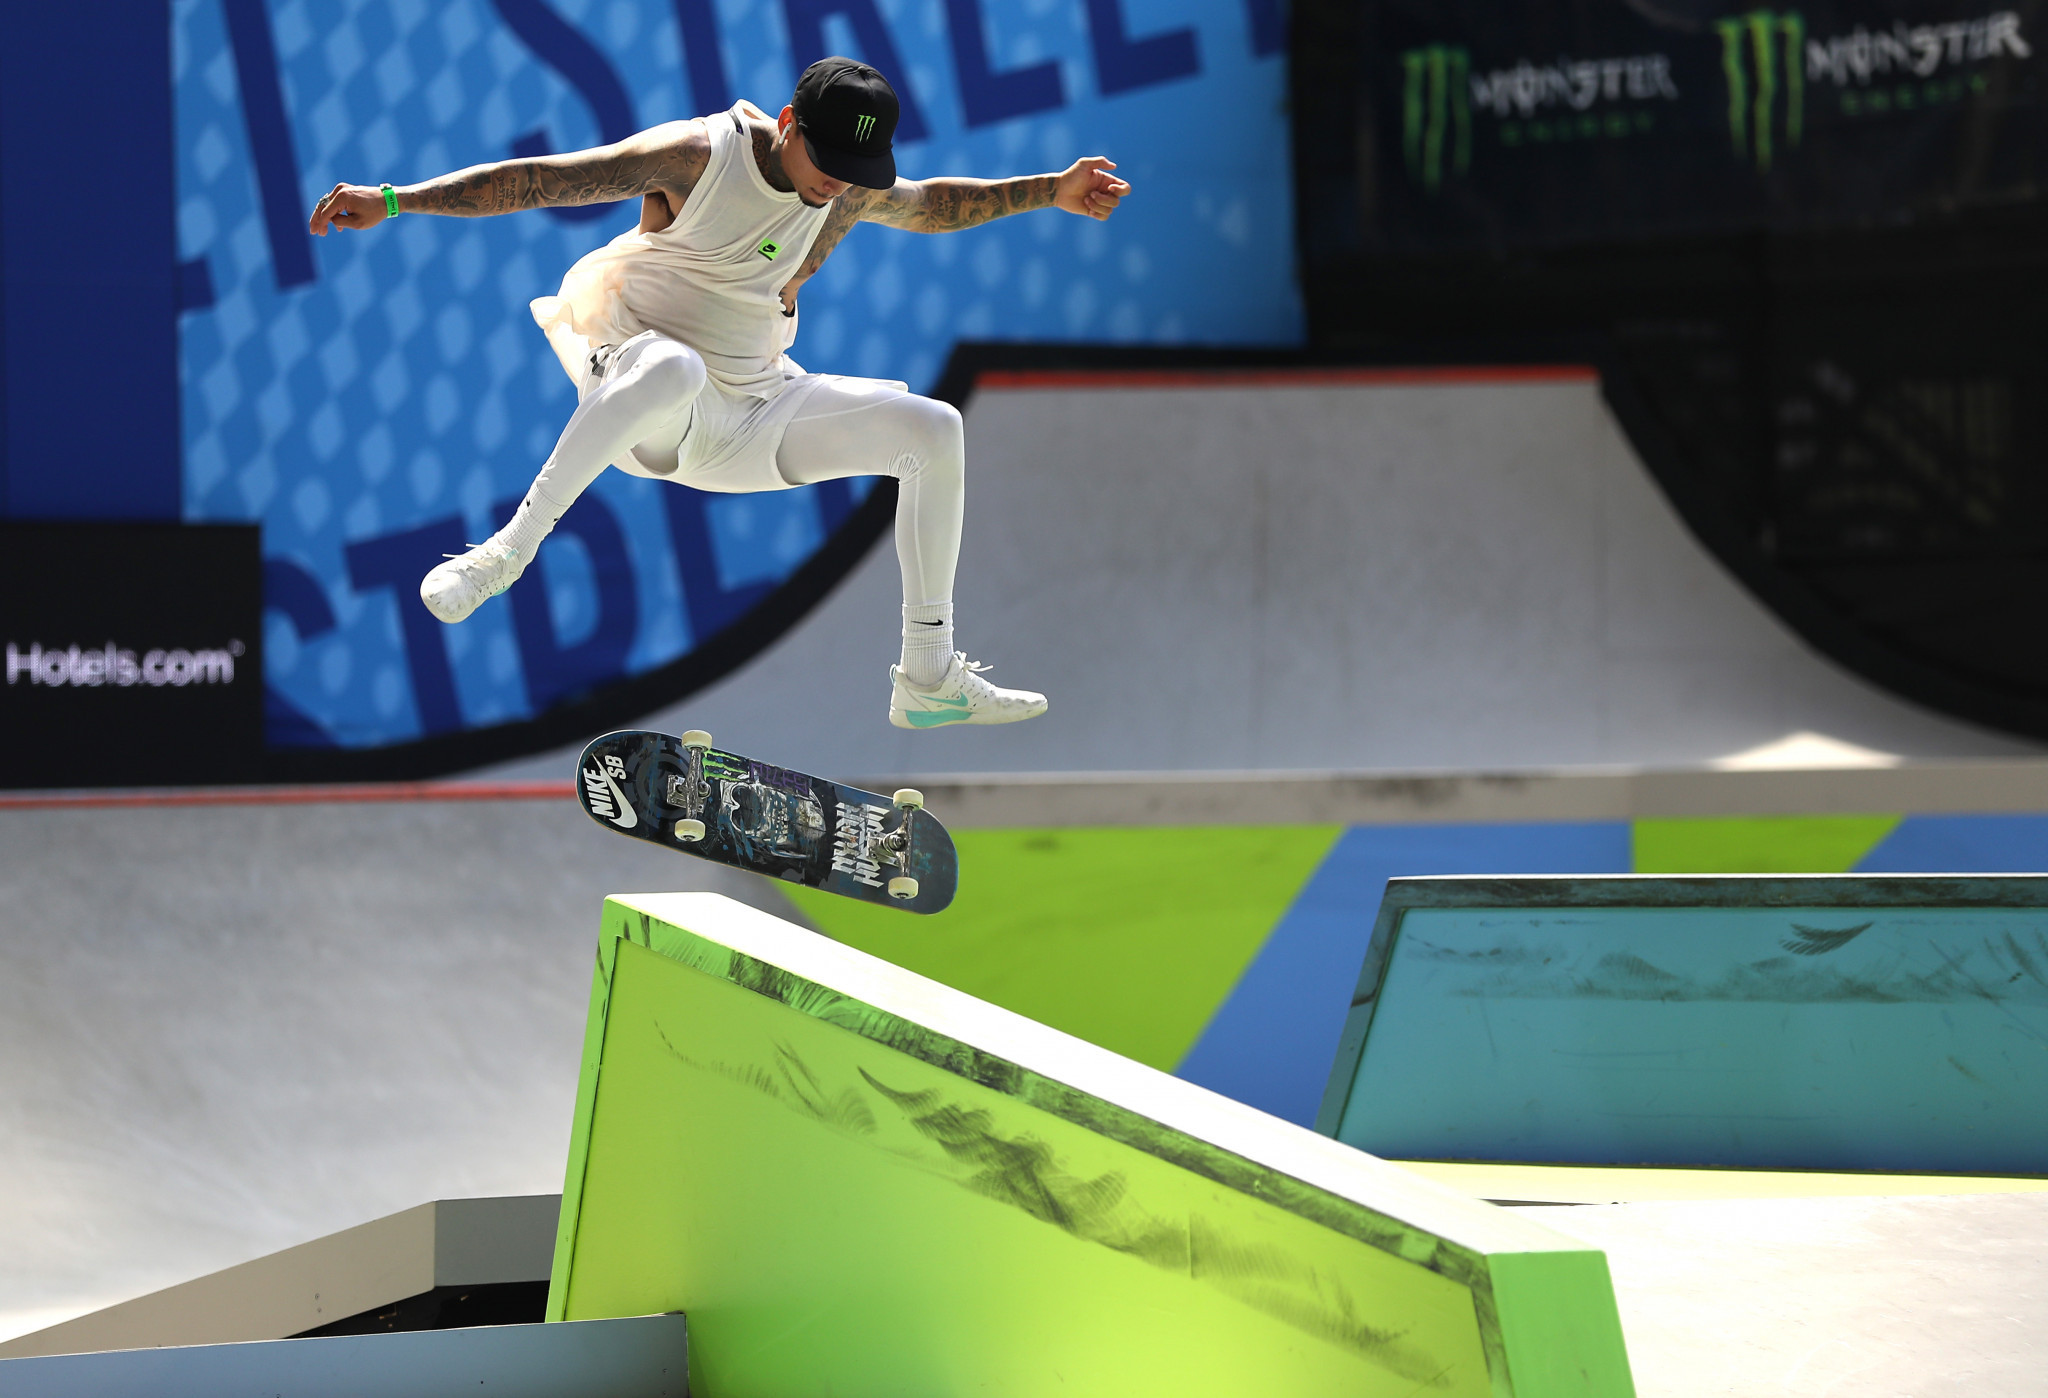 World Skate confirm 80 athletes qualified for skateboarding Olympic debut